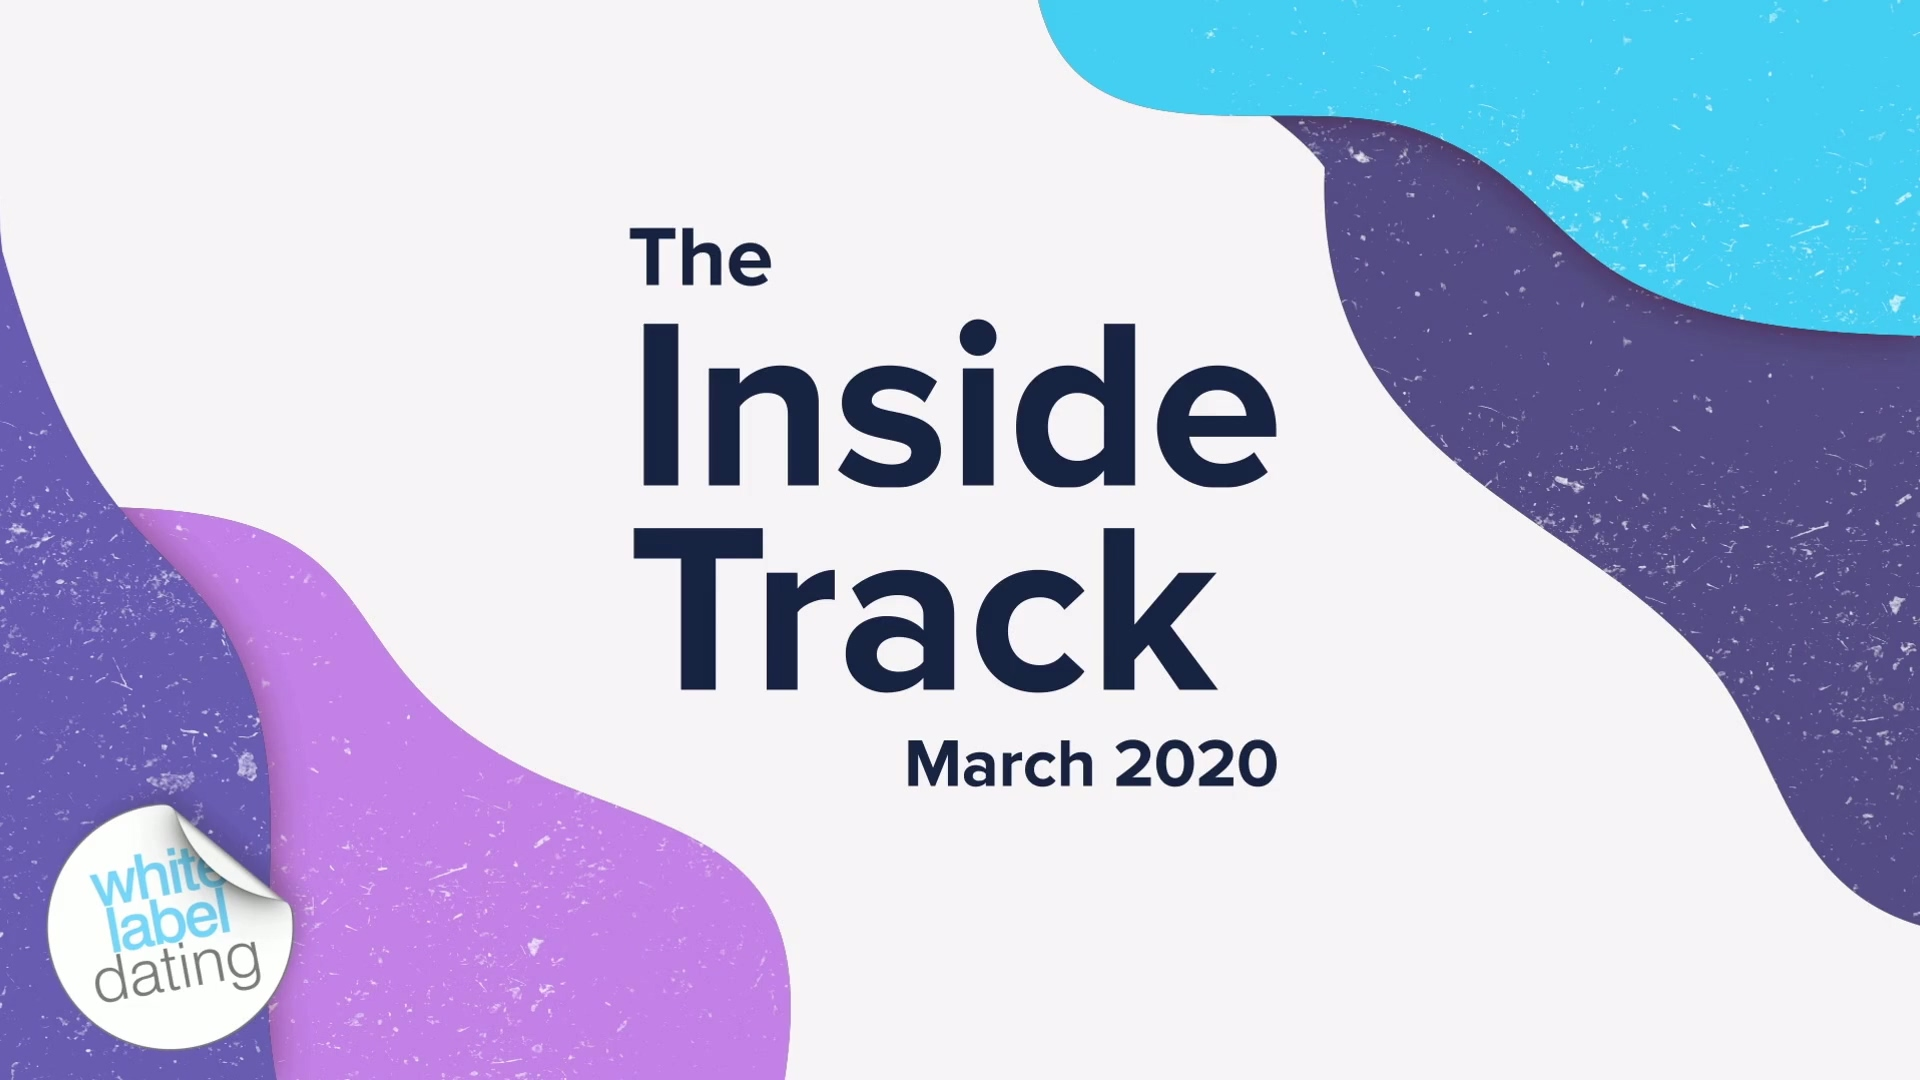 The Inside Track - March 2020 (confirmed)